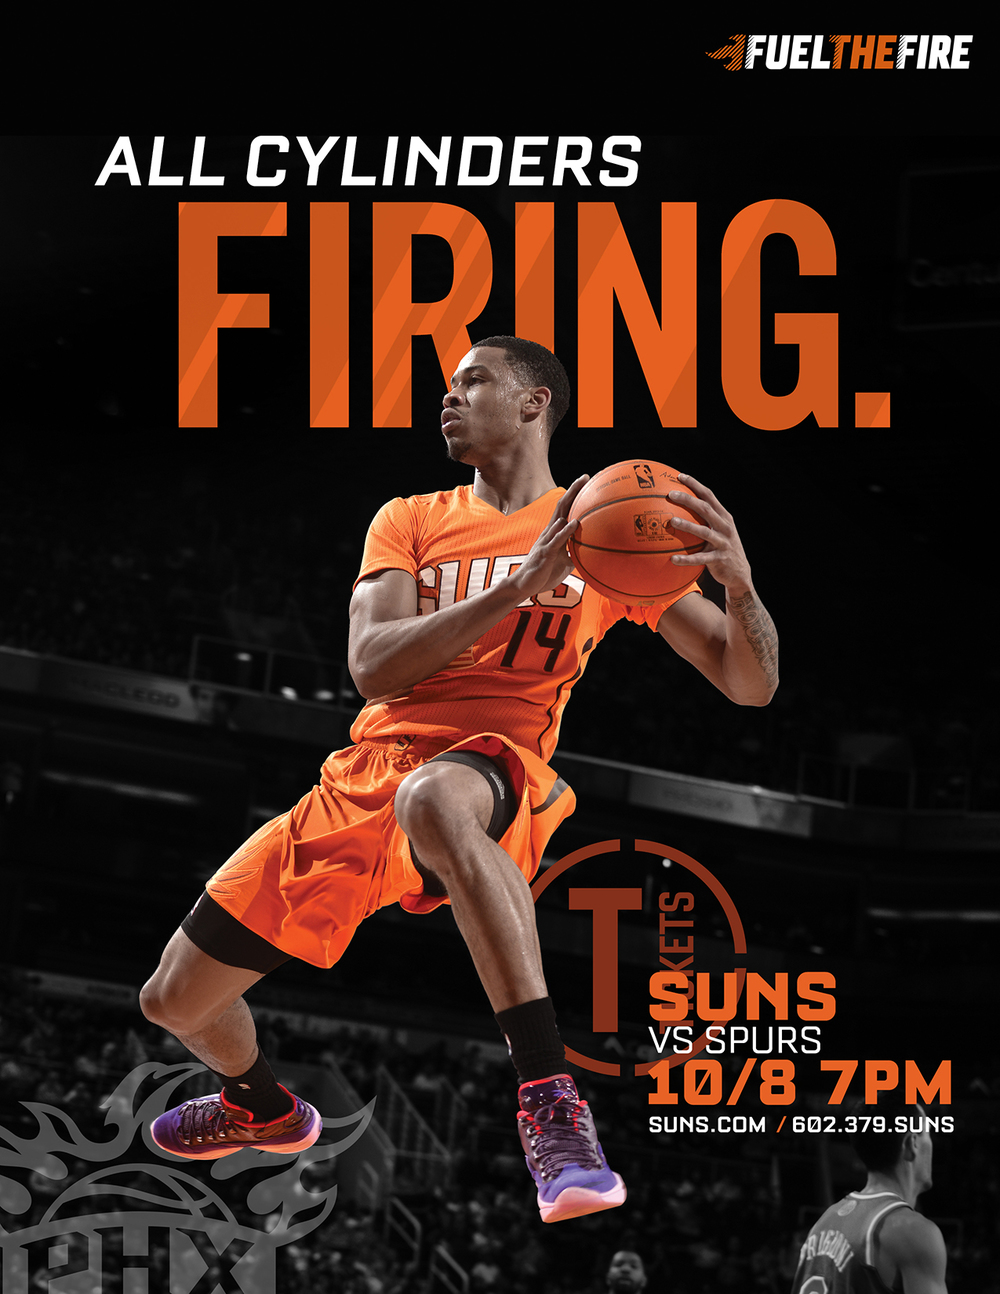 Phoenix Suns Print Ad Art Direction: Katie Blaker, Hugh Mulligan Creative Direction: GG LeMere, Greg Fisher, Jason Smith